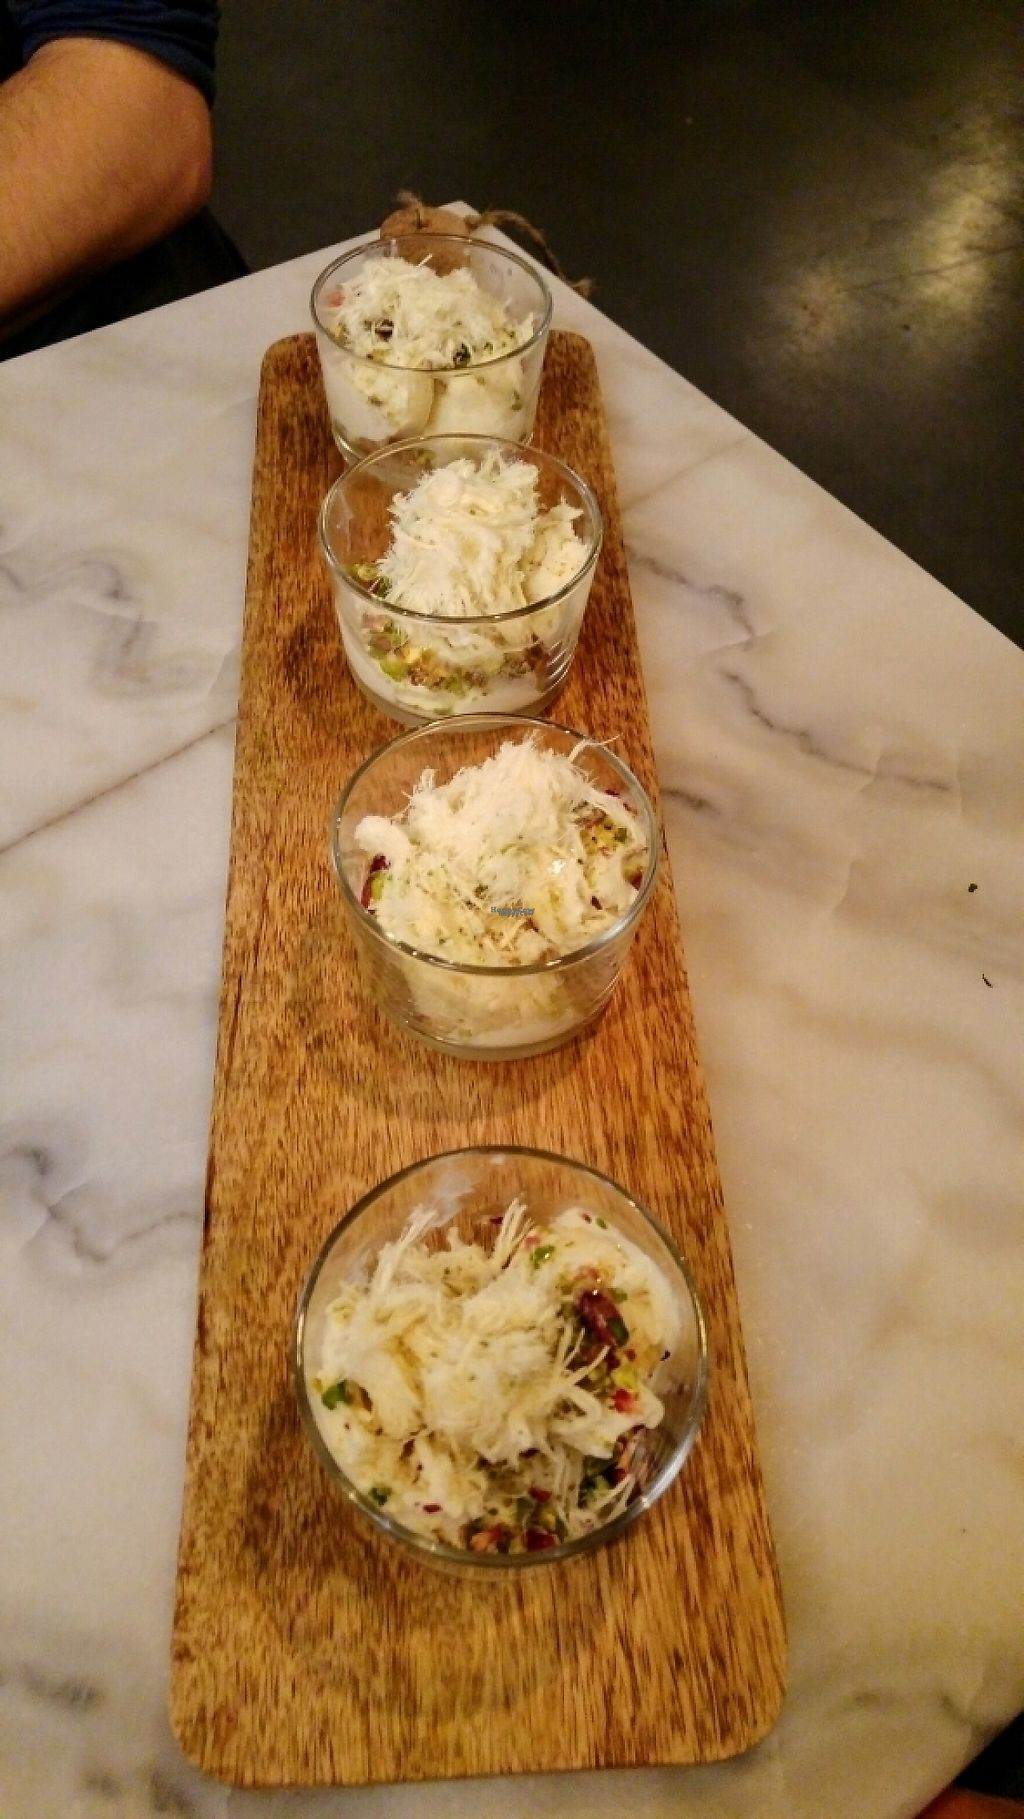 """Photo of Hummus  by <a href=""""/members/profile/Jannetje"""">Jannetje</a> <br/>Delicious soya-icecream with pistachio and """"engelenhaar"""" (hair of an angel)  <br/> February 27, 2017  - <a href='/contact/abuse/image/77109/230987'>Report</a>"""